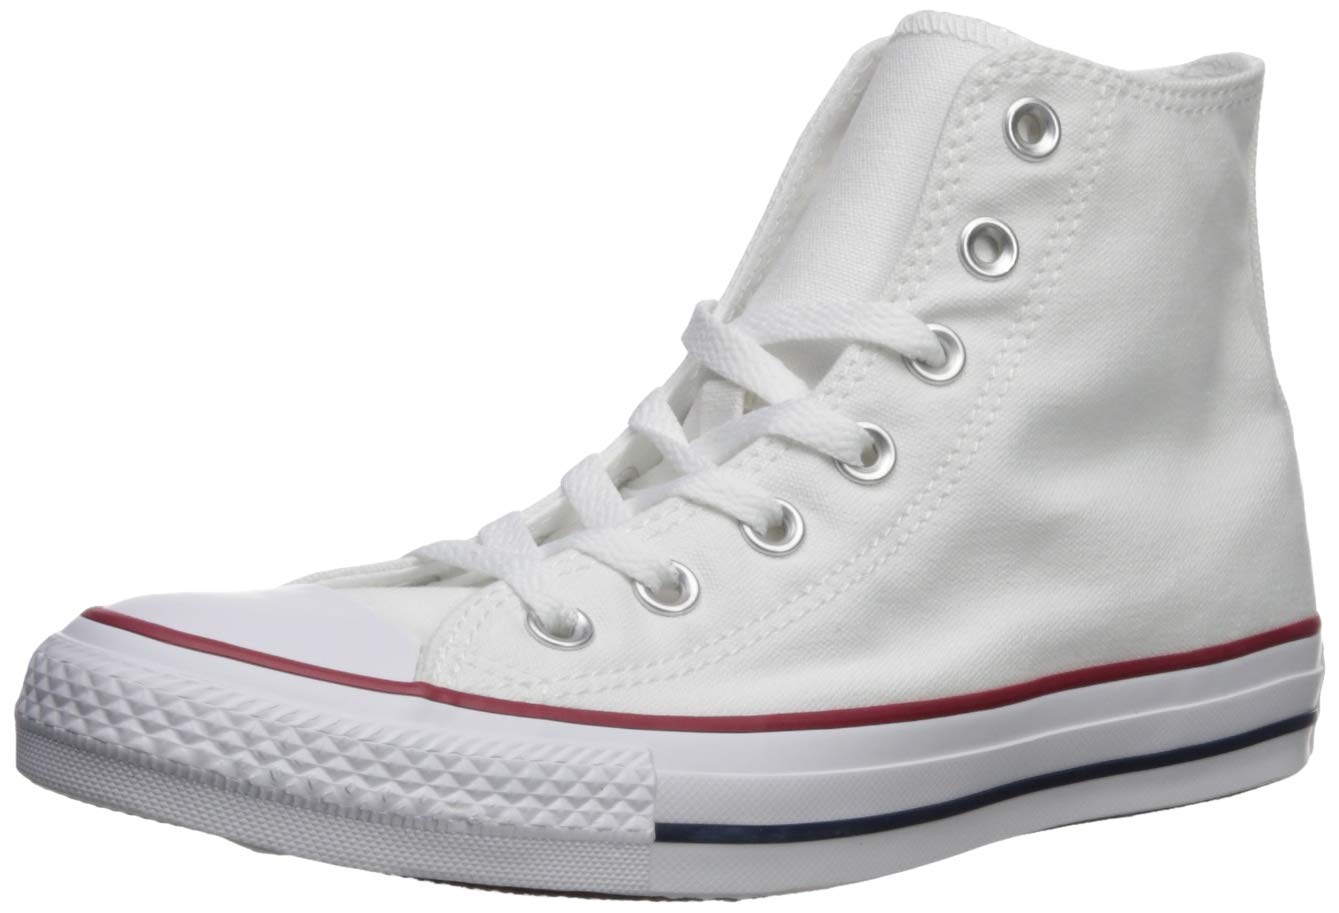 Converse Clothing & Apparel Chuck Taylor All Star High Top Sneaker Optical White 13 M US